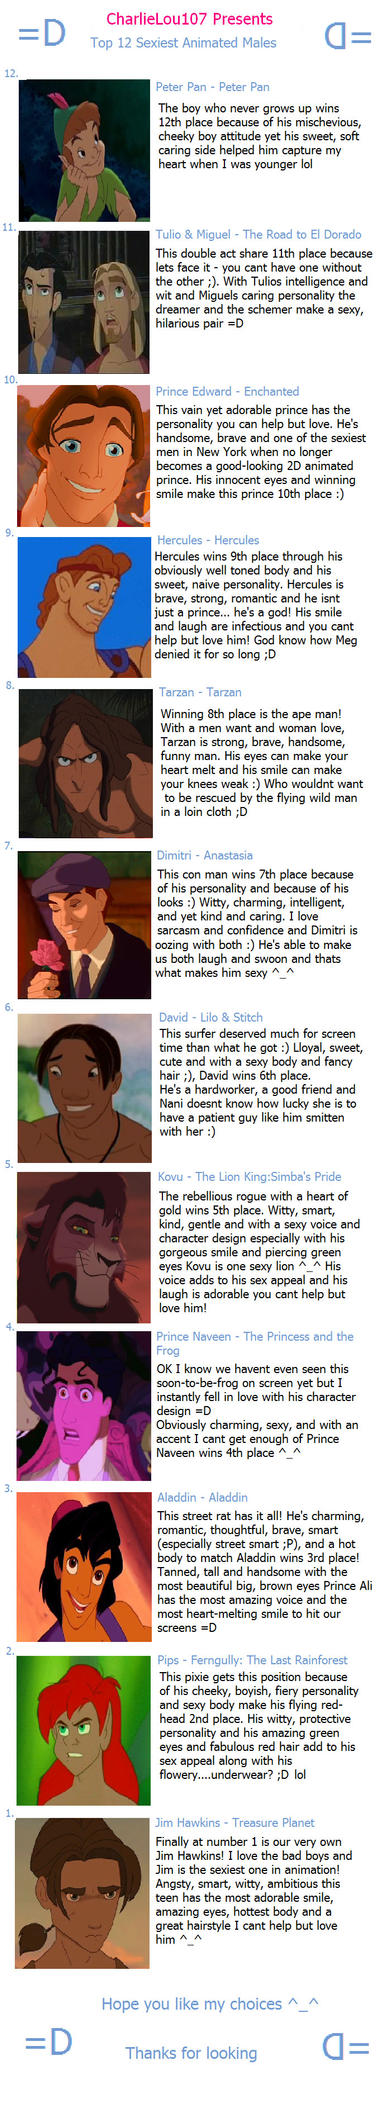 Top 12 Sexiest Animated Males by CharlieLou107